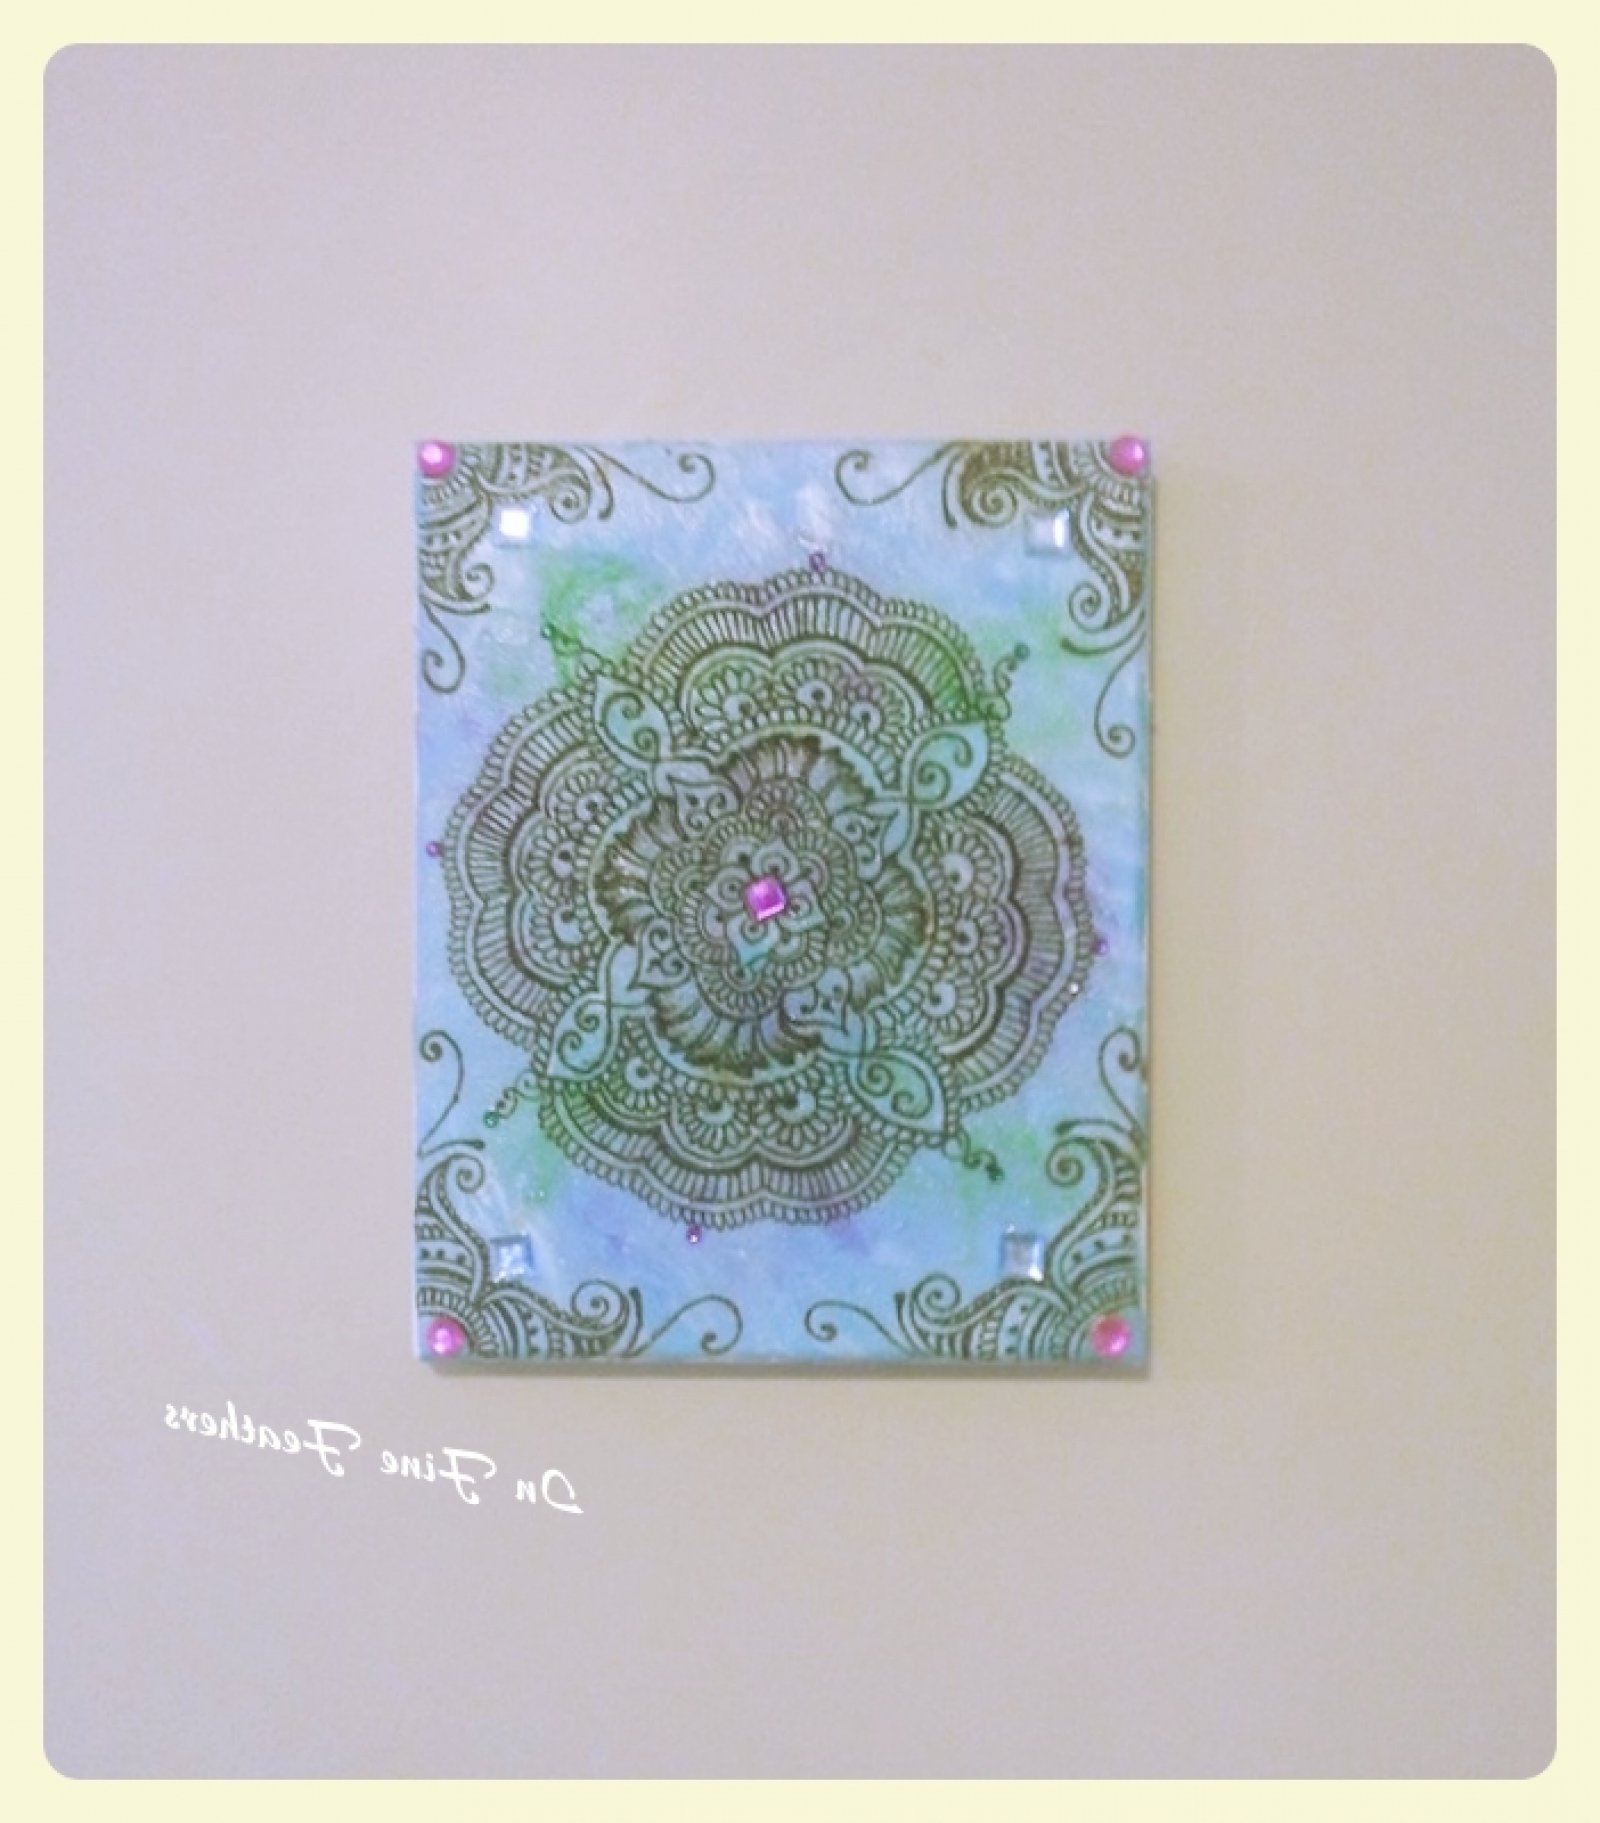 Henna Mandala Boho Chic Wall Art Yoga Studio Office Spring Decor Intended For Preferred Boho Chic Wall Art (Gallery 13 of 15)